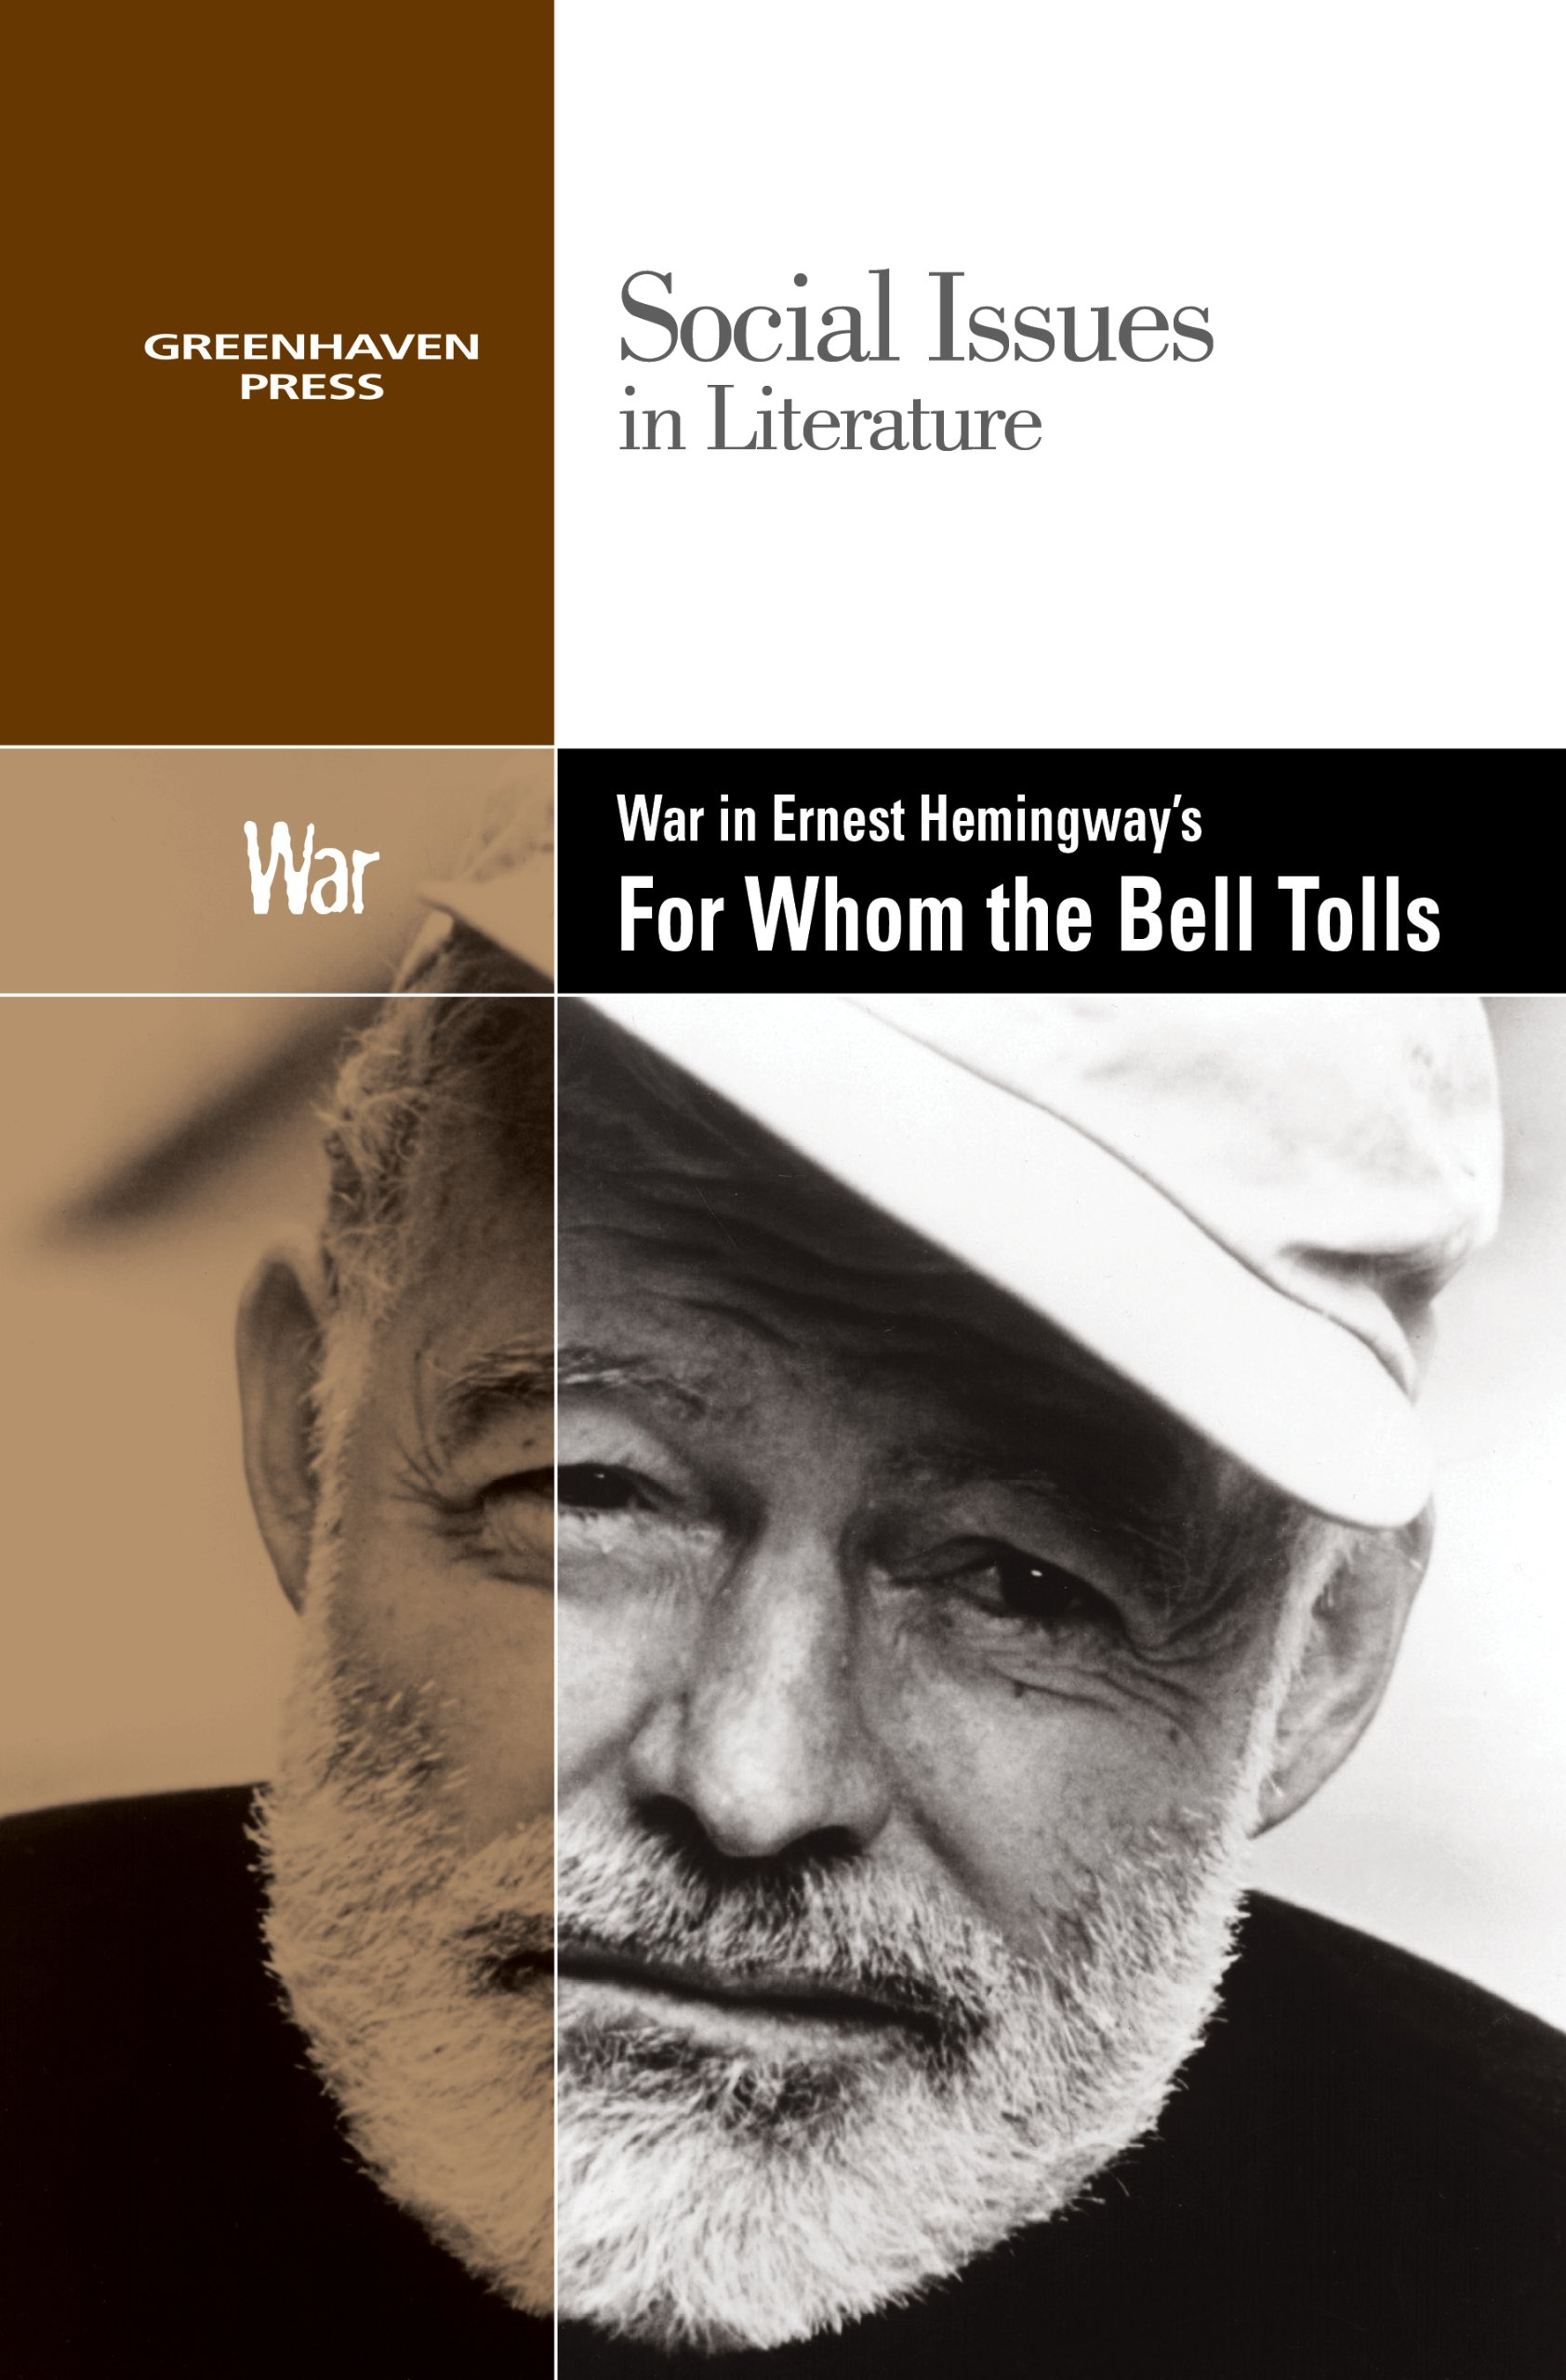 Download War in Ernest Hemingway's For Whom the Bell Tolls (Social Issues in Literature) PDF